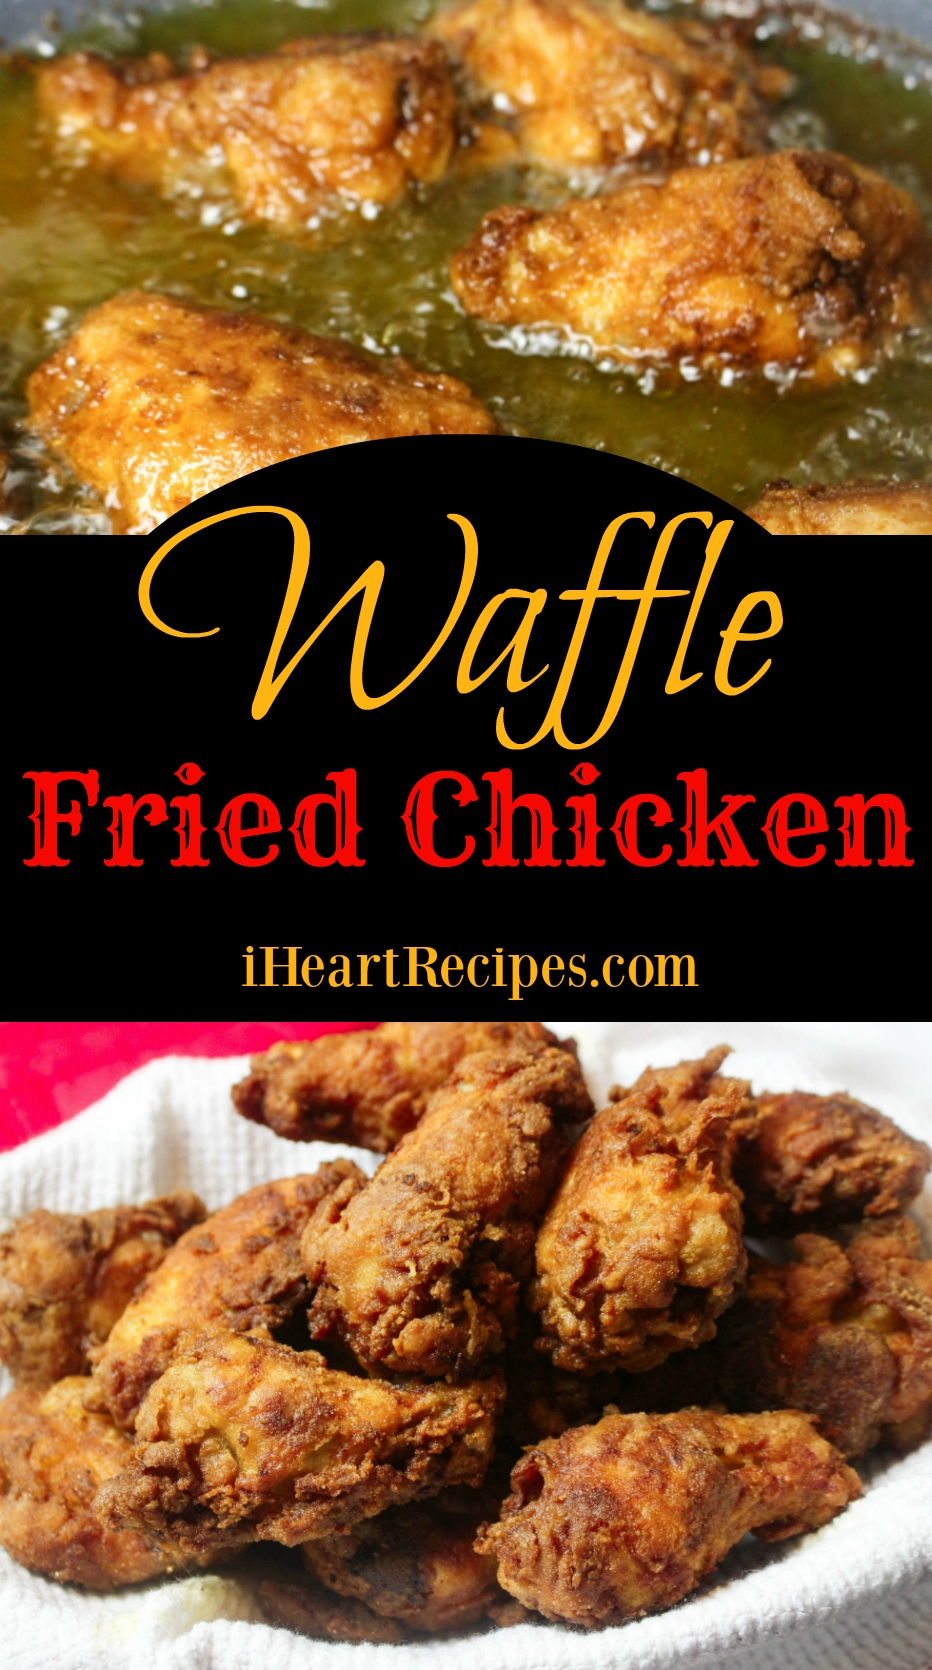 Waffle Fried Chicken | I Heart Recipes